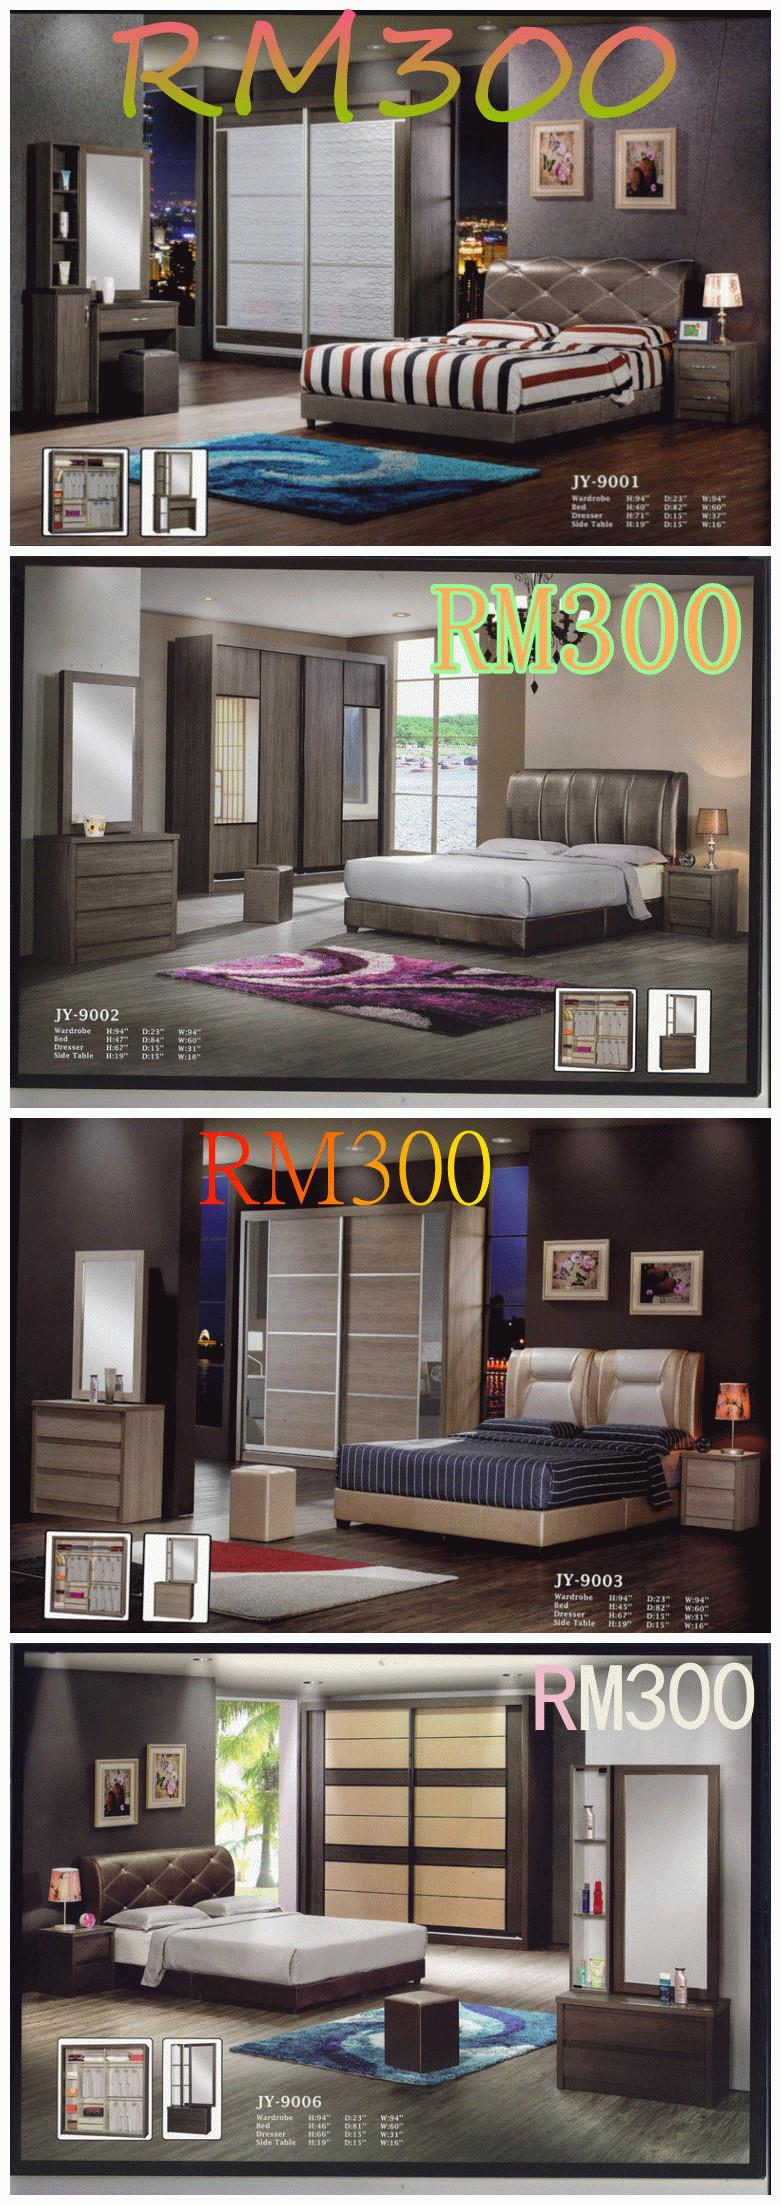 QUEEN SIZE BEDROOM SET INCLUDING MATTRESS 6 IN 1 INSTALLMENT PRICE